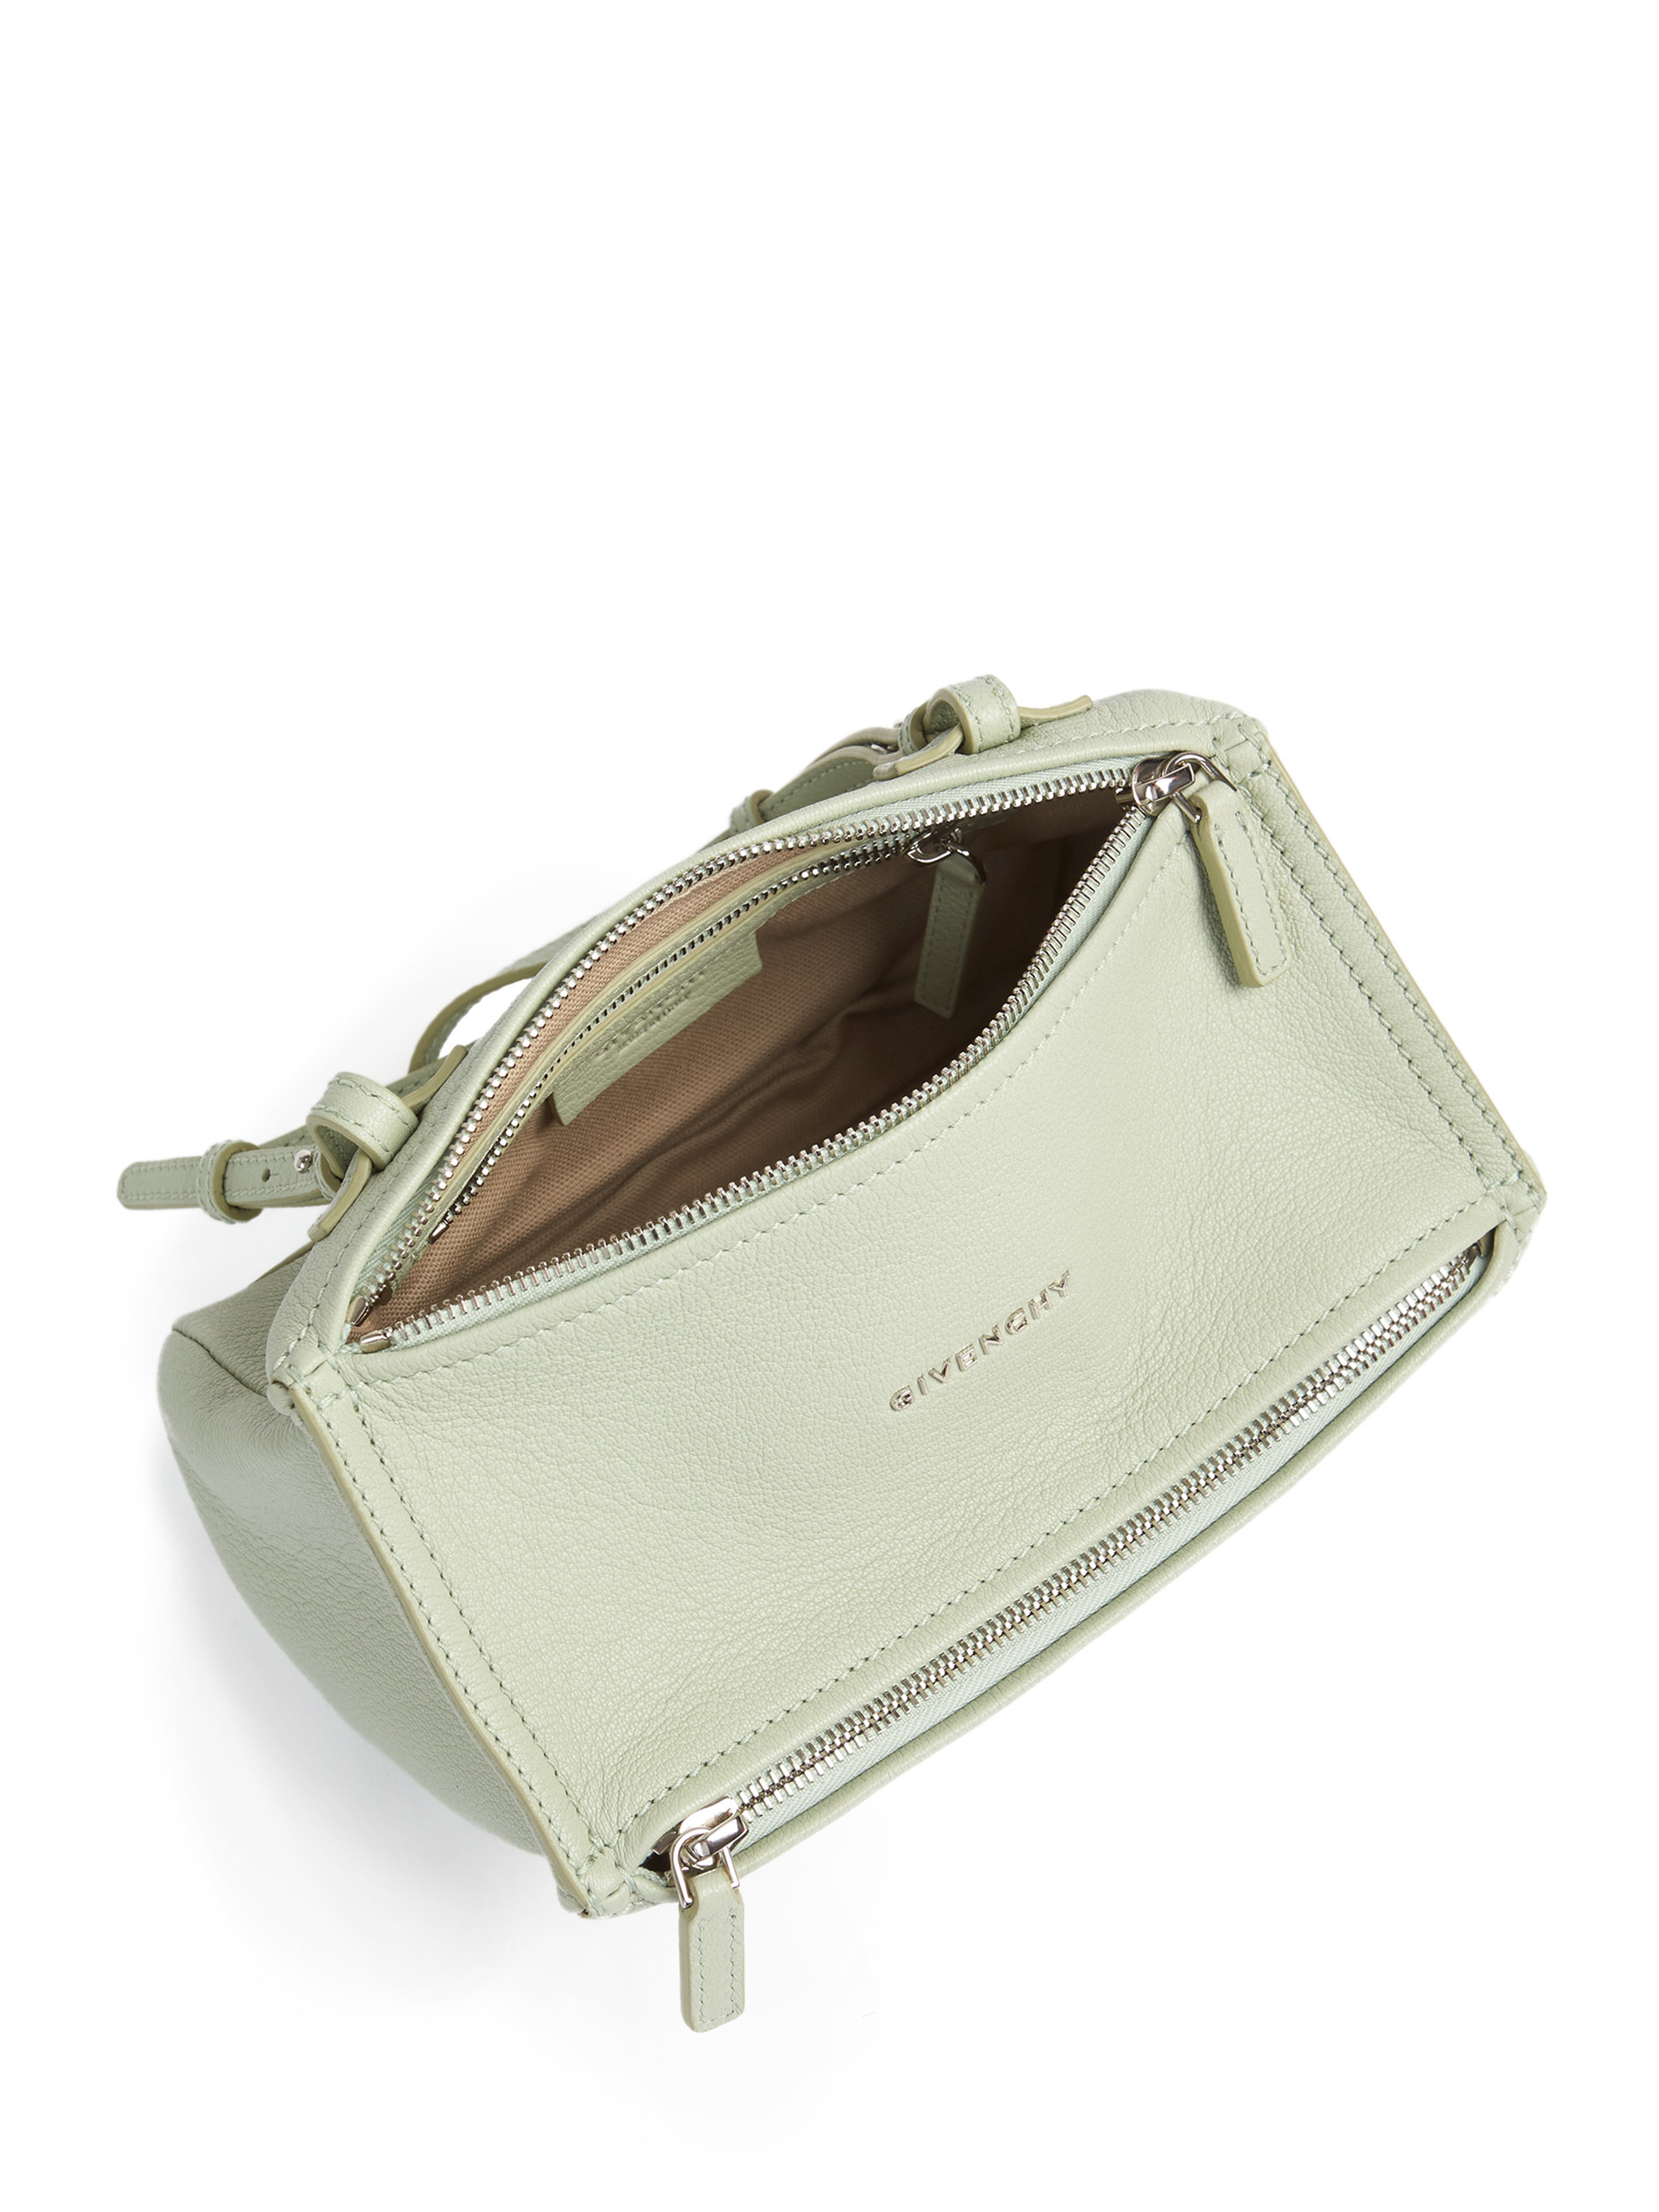 9c2b8302d86 Givenchy Pandora Mini Leather Shoulder Bag in White - Lyst